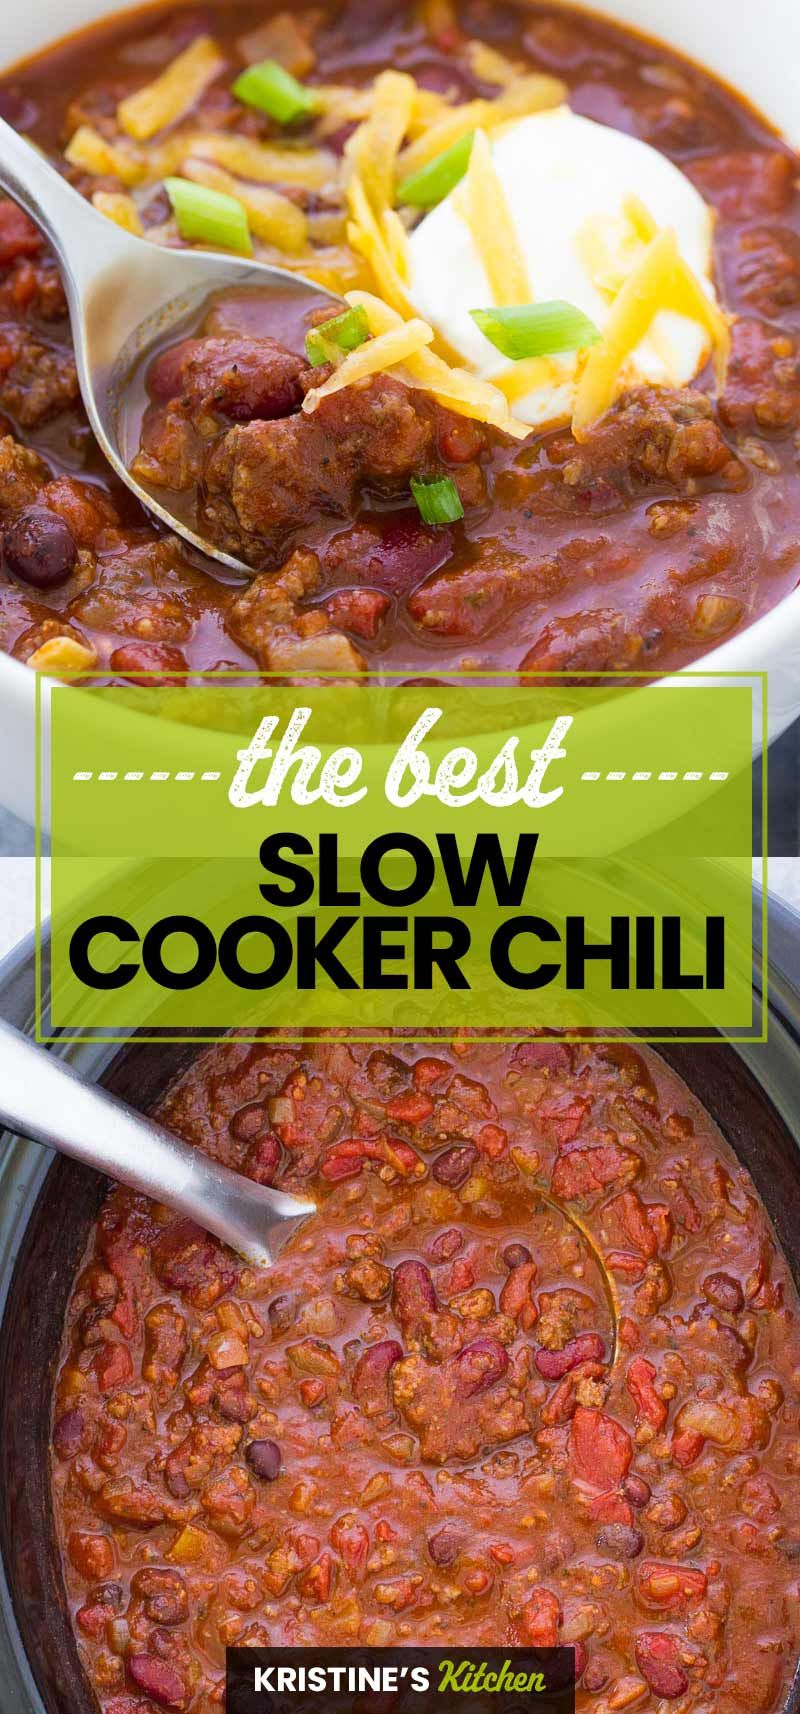 Slow Cooker Beef Chili In 2020 Slow Cooker Chili Slow Cooker Chili Recipe Slow Cooker Chili Easy